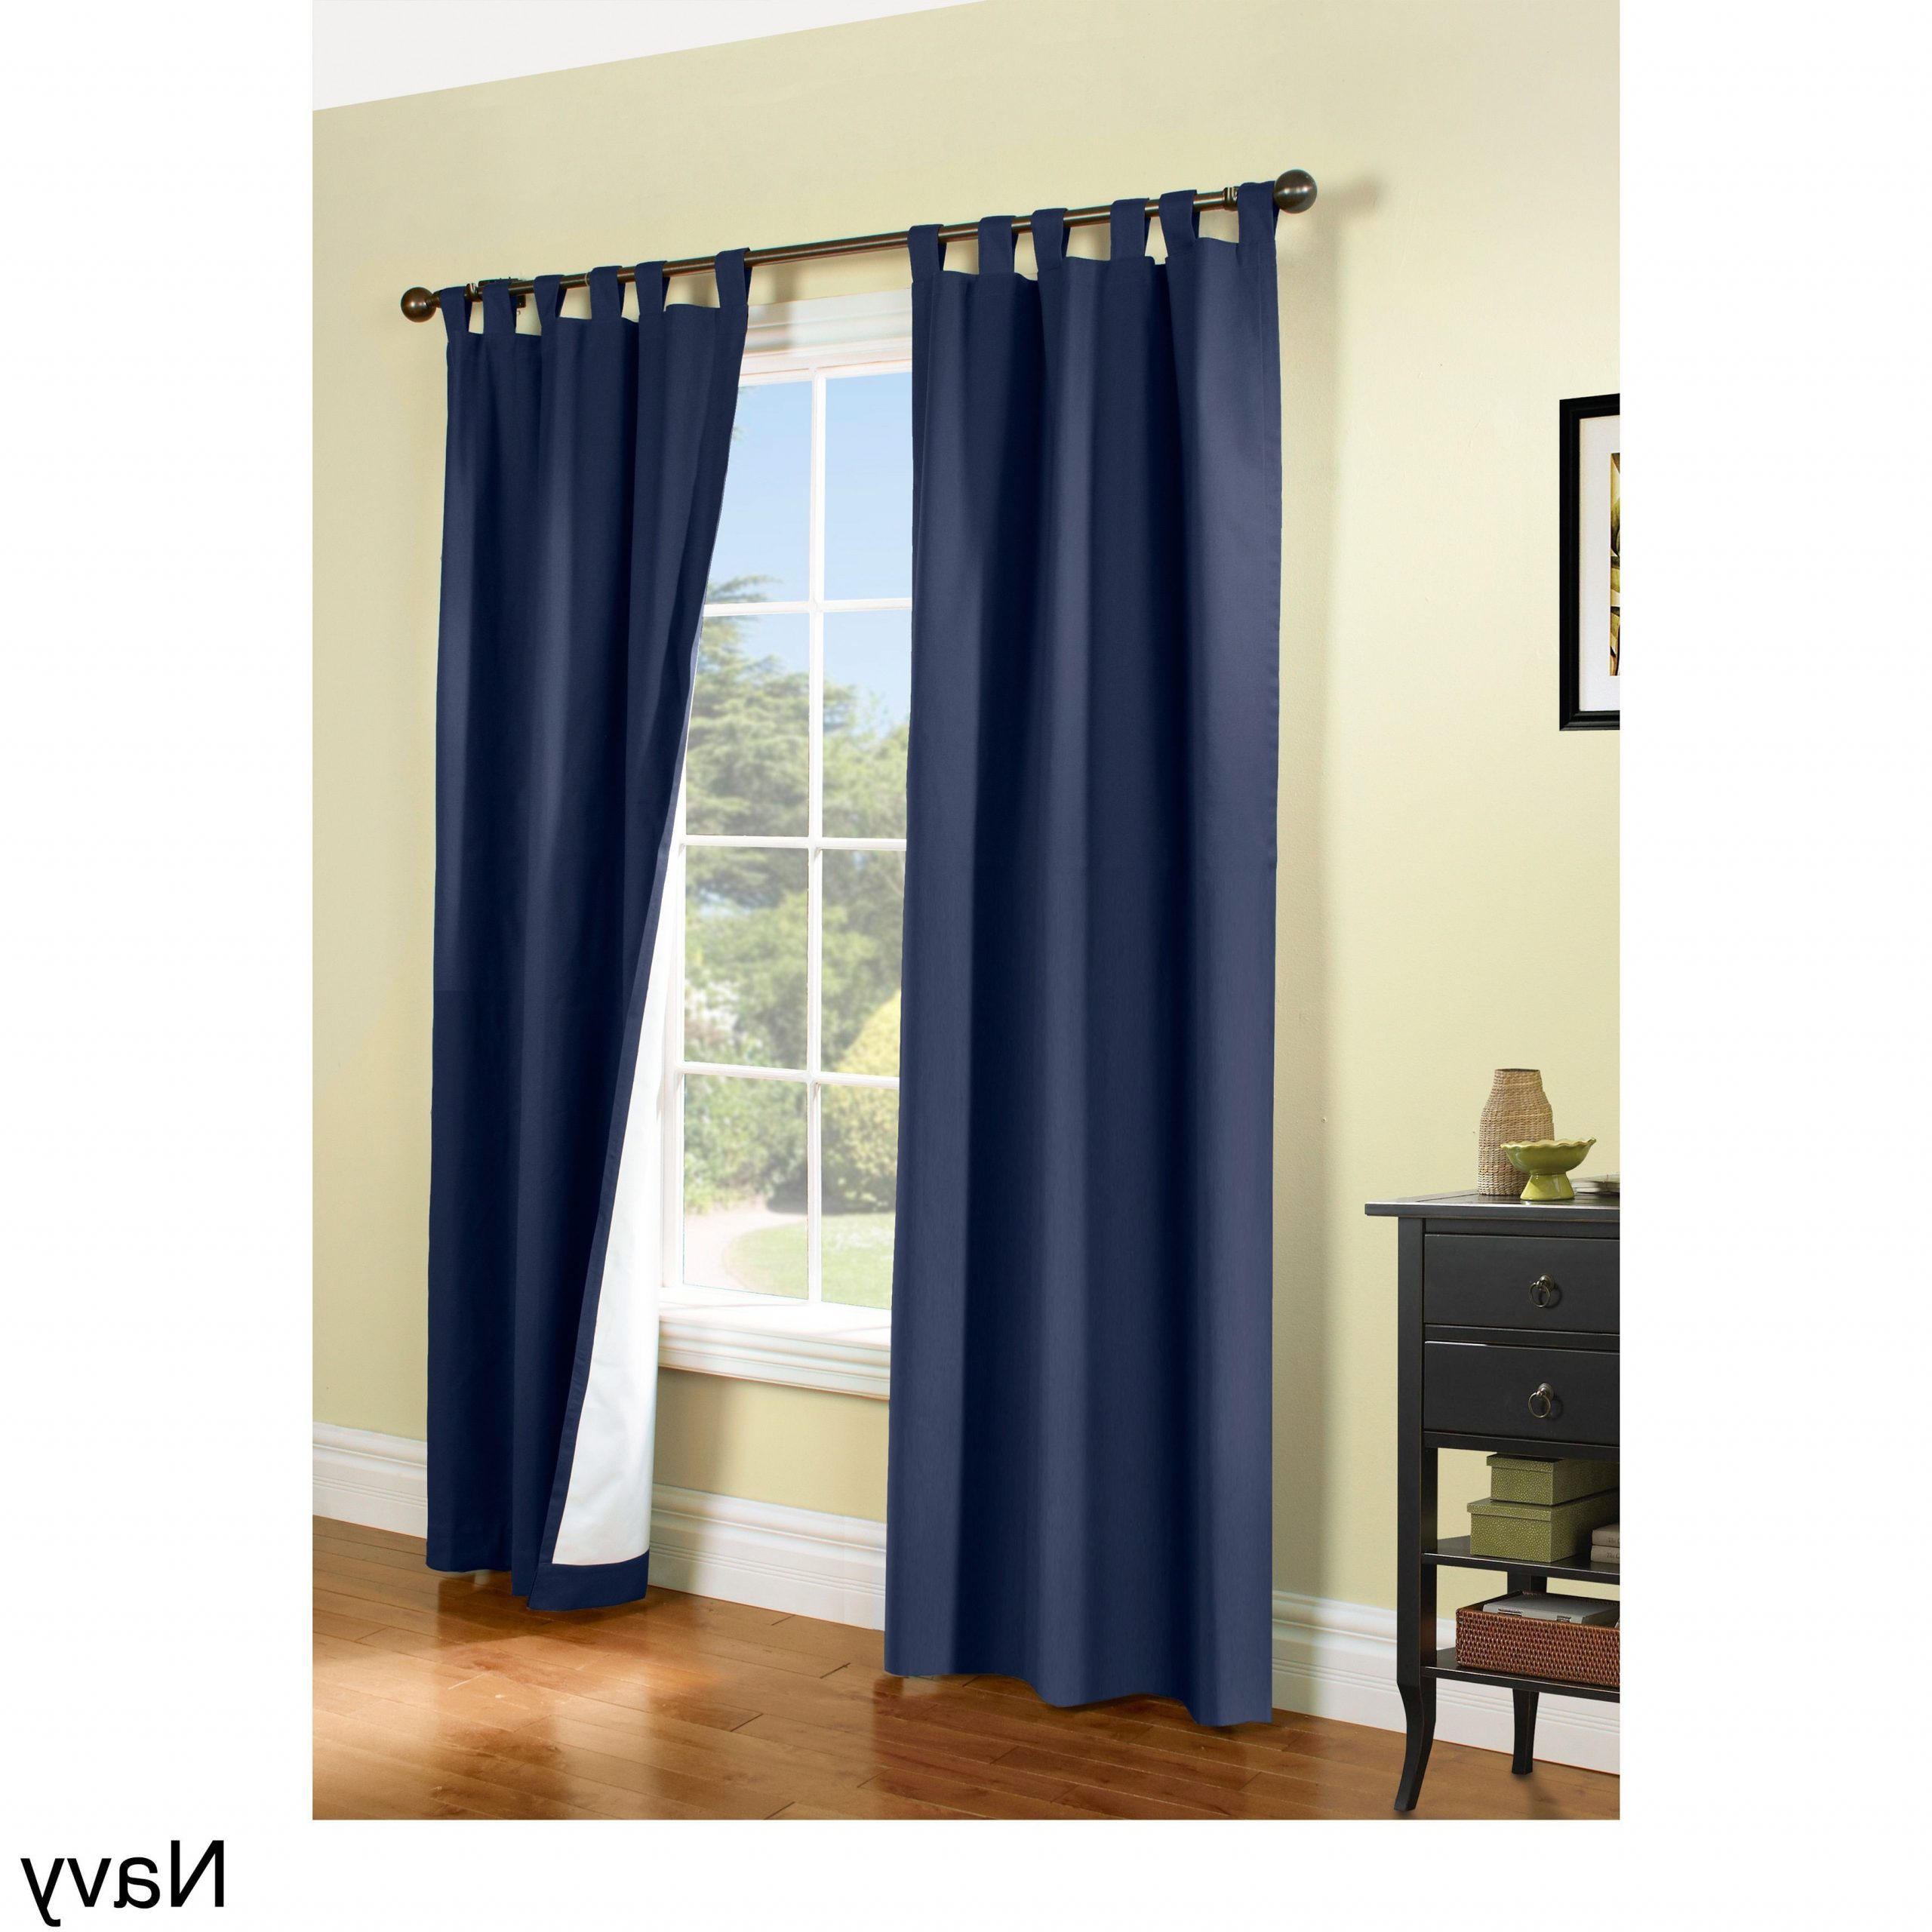 Insulated Cotton Curtain Panel Pairs Regarding Best And Newest Weathermate Insulated Cotton Curtain Panel Pair (63x80 Navy (View 3 of 20)